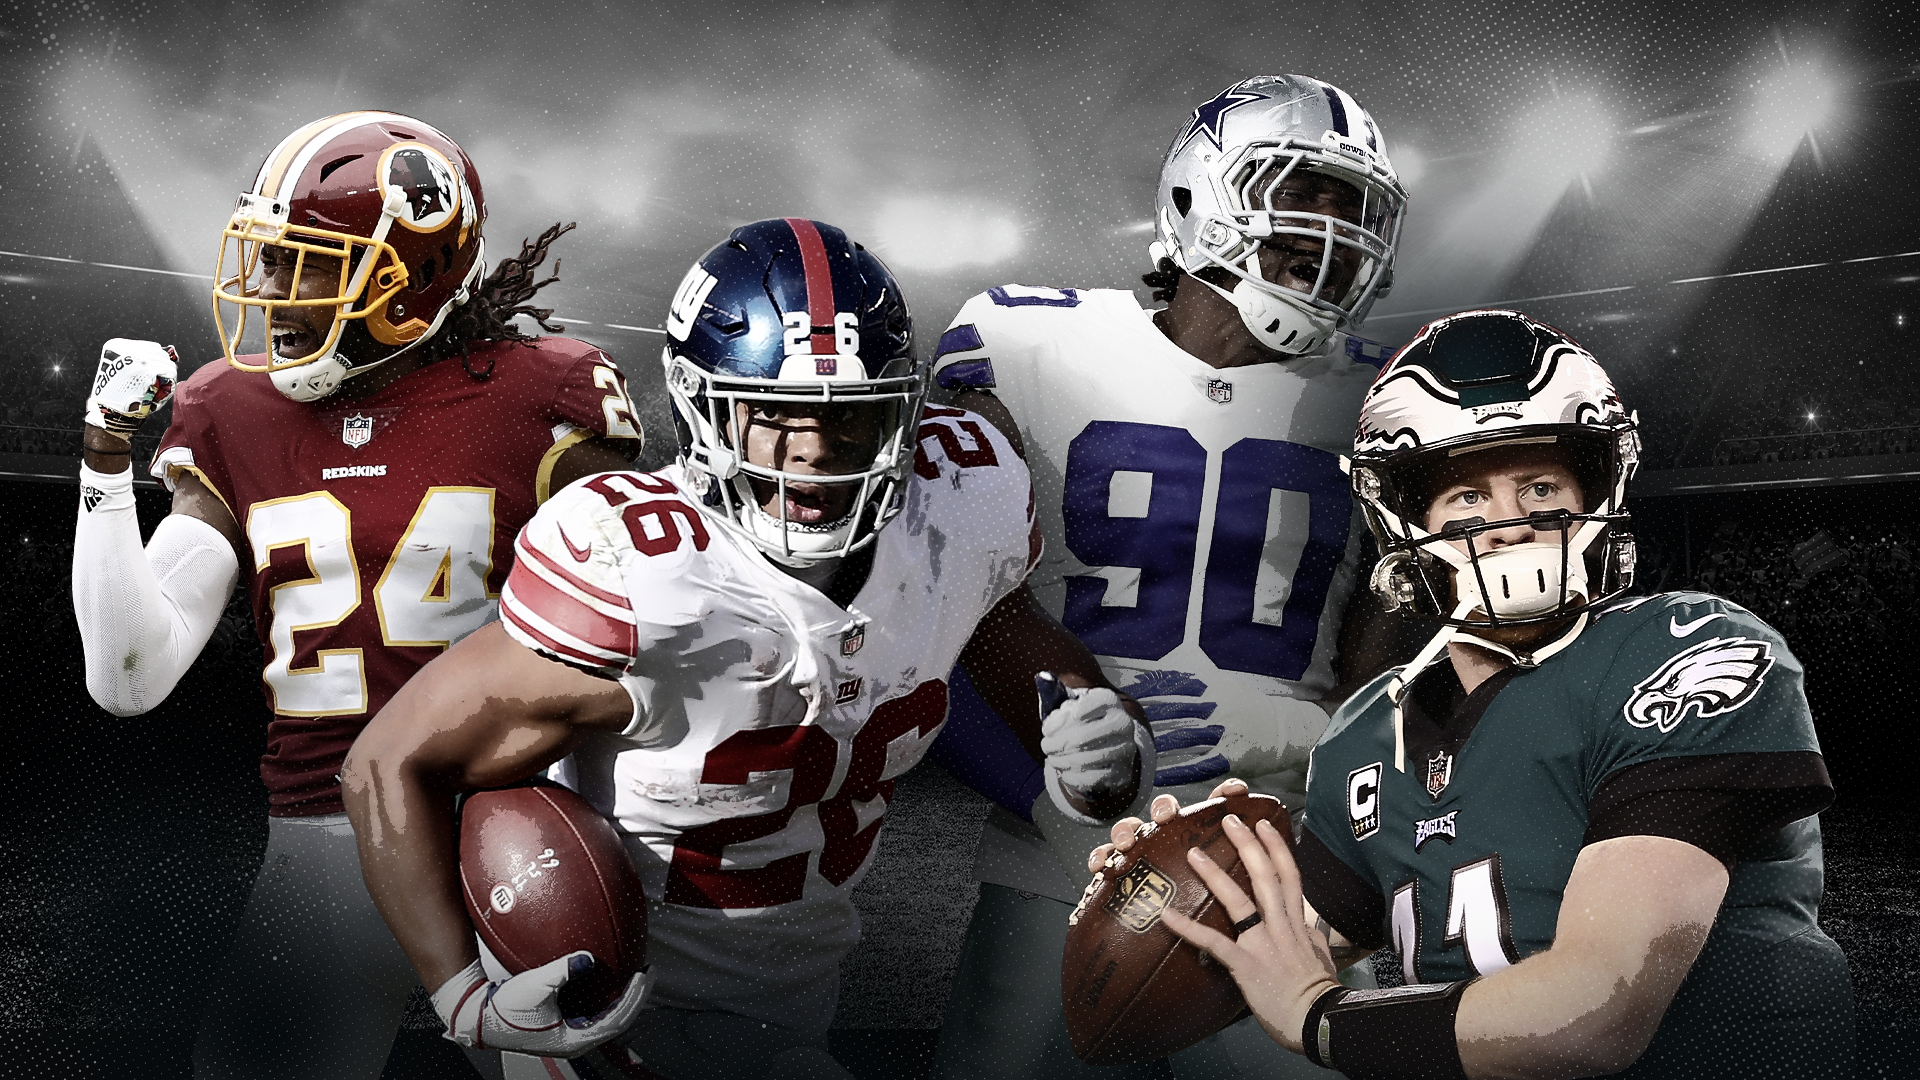 NFL Predictions Win-Loss Ratio Odds East League Eagles Cowboys Redskins Giants